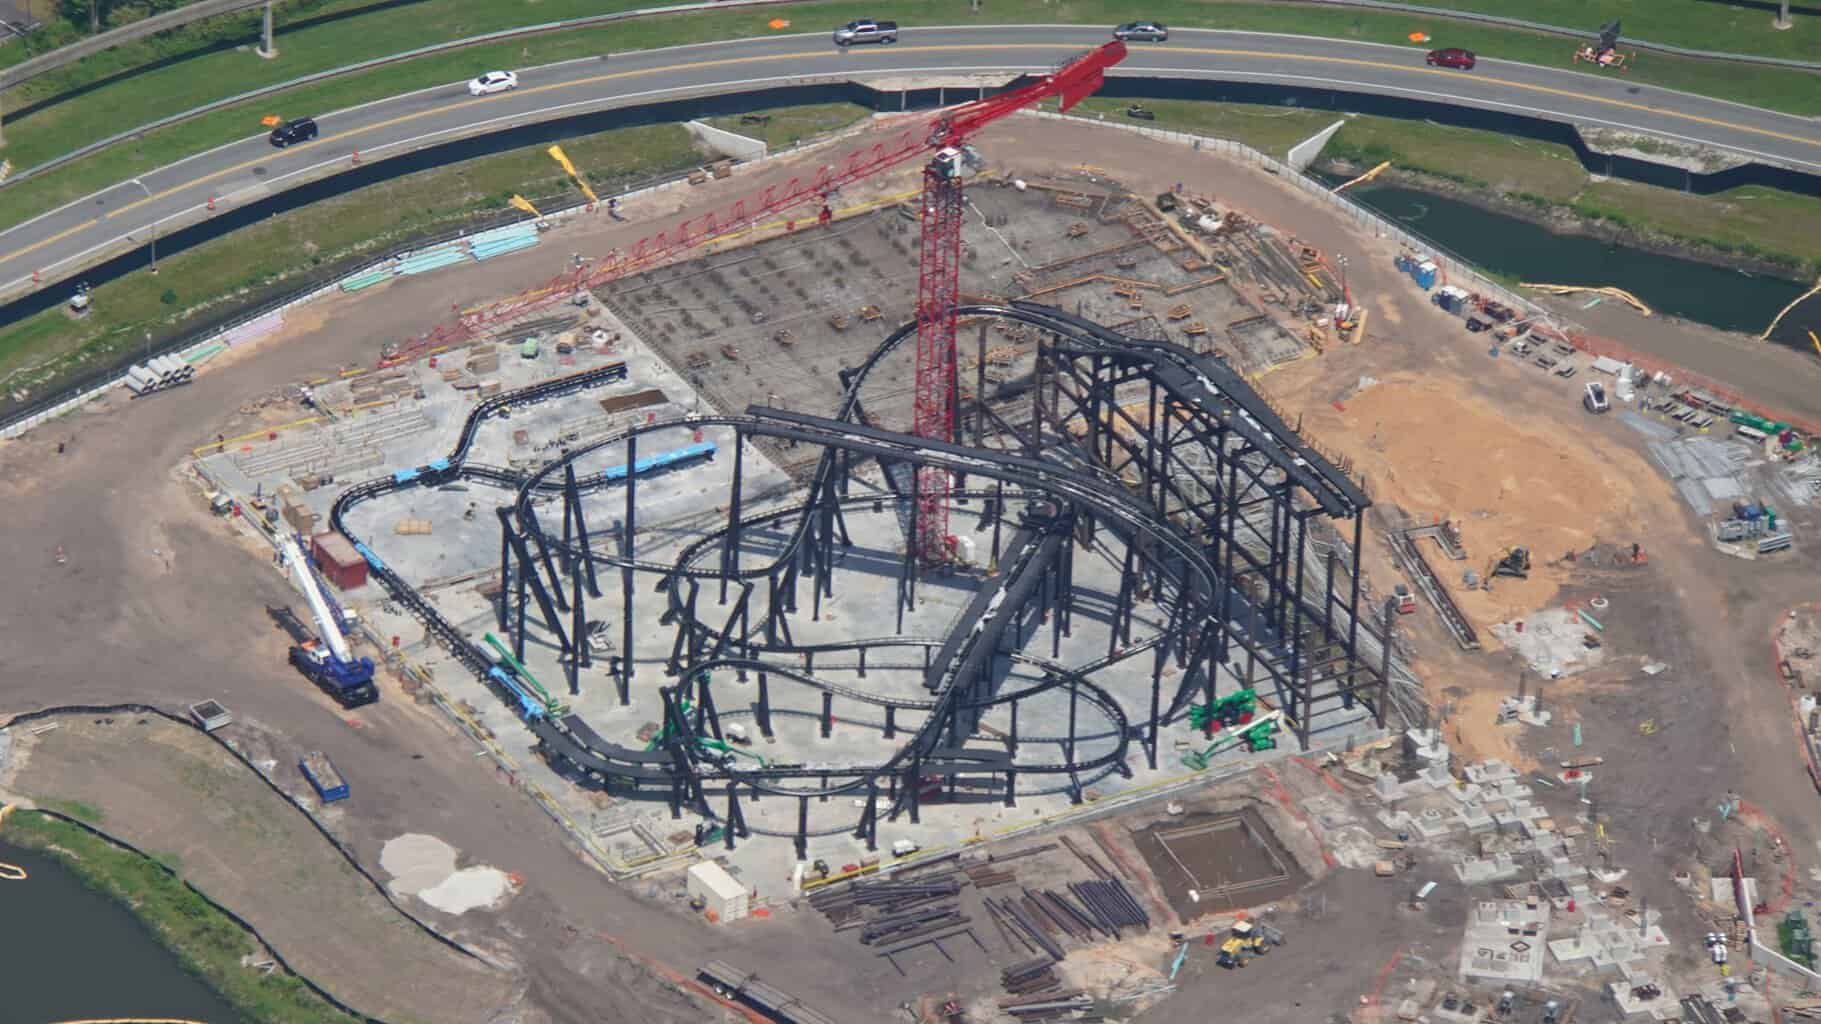 TRON Coaster construction site July 2019